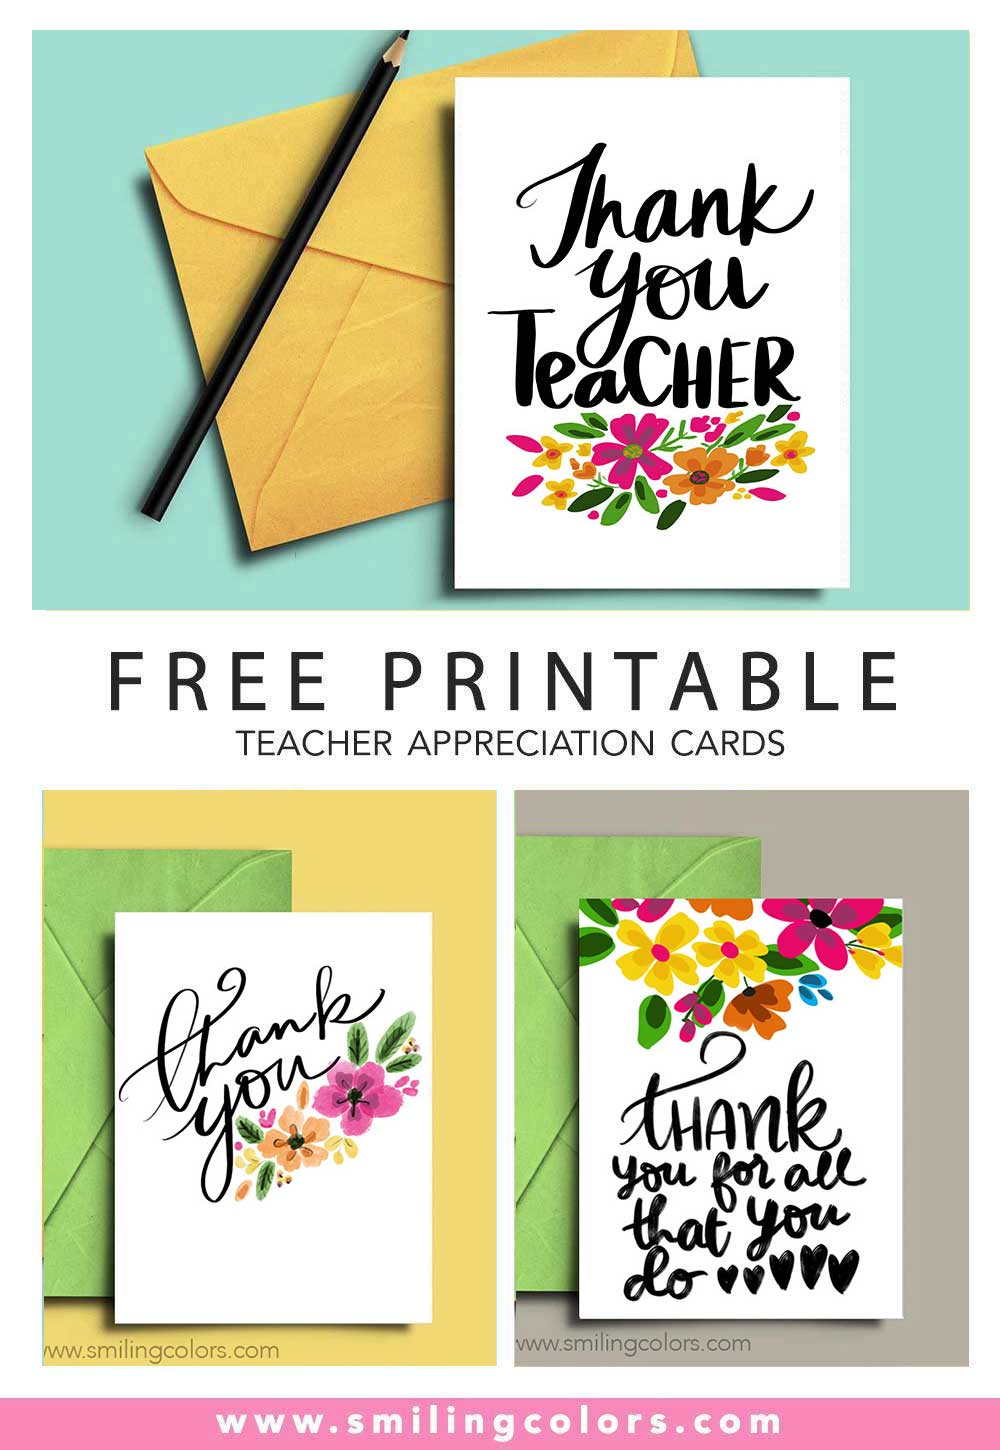 graphic regarding Printable Thank You Card referred to as Thank on your own trainer: A preset of Absolutely free printable observe playing cards